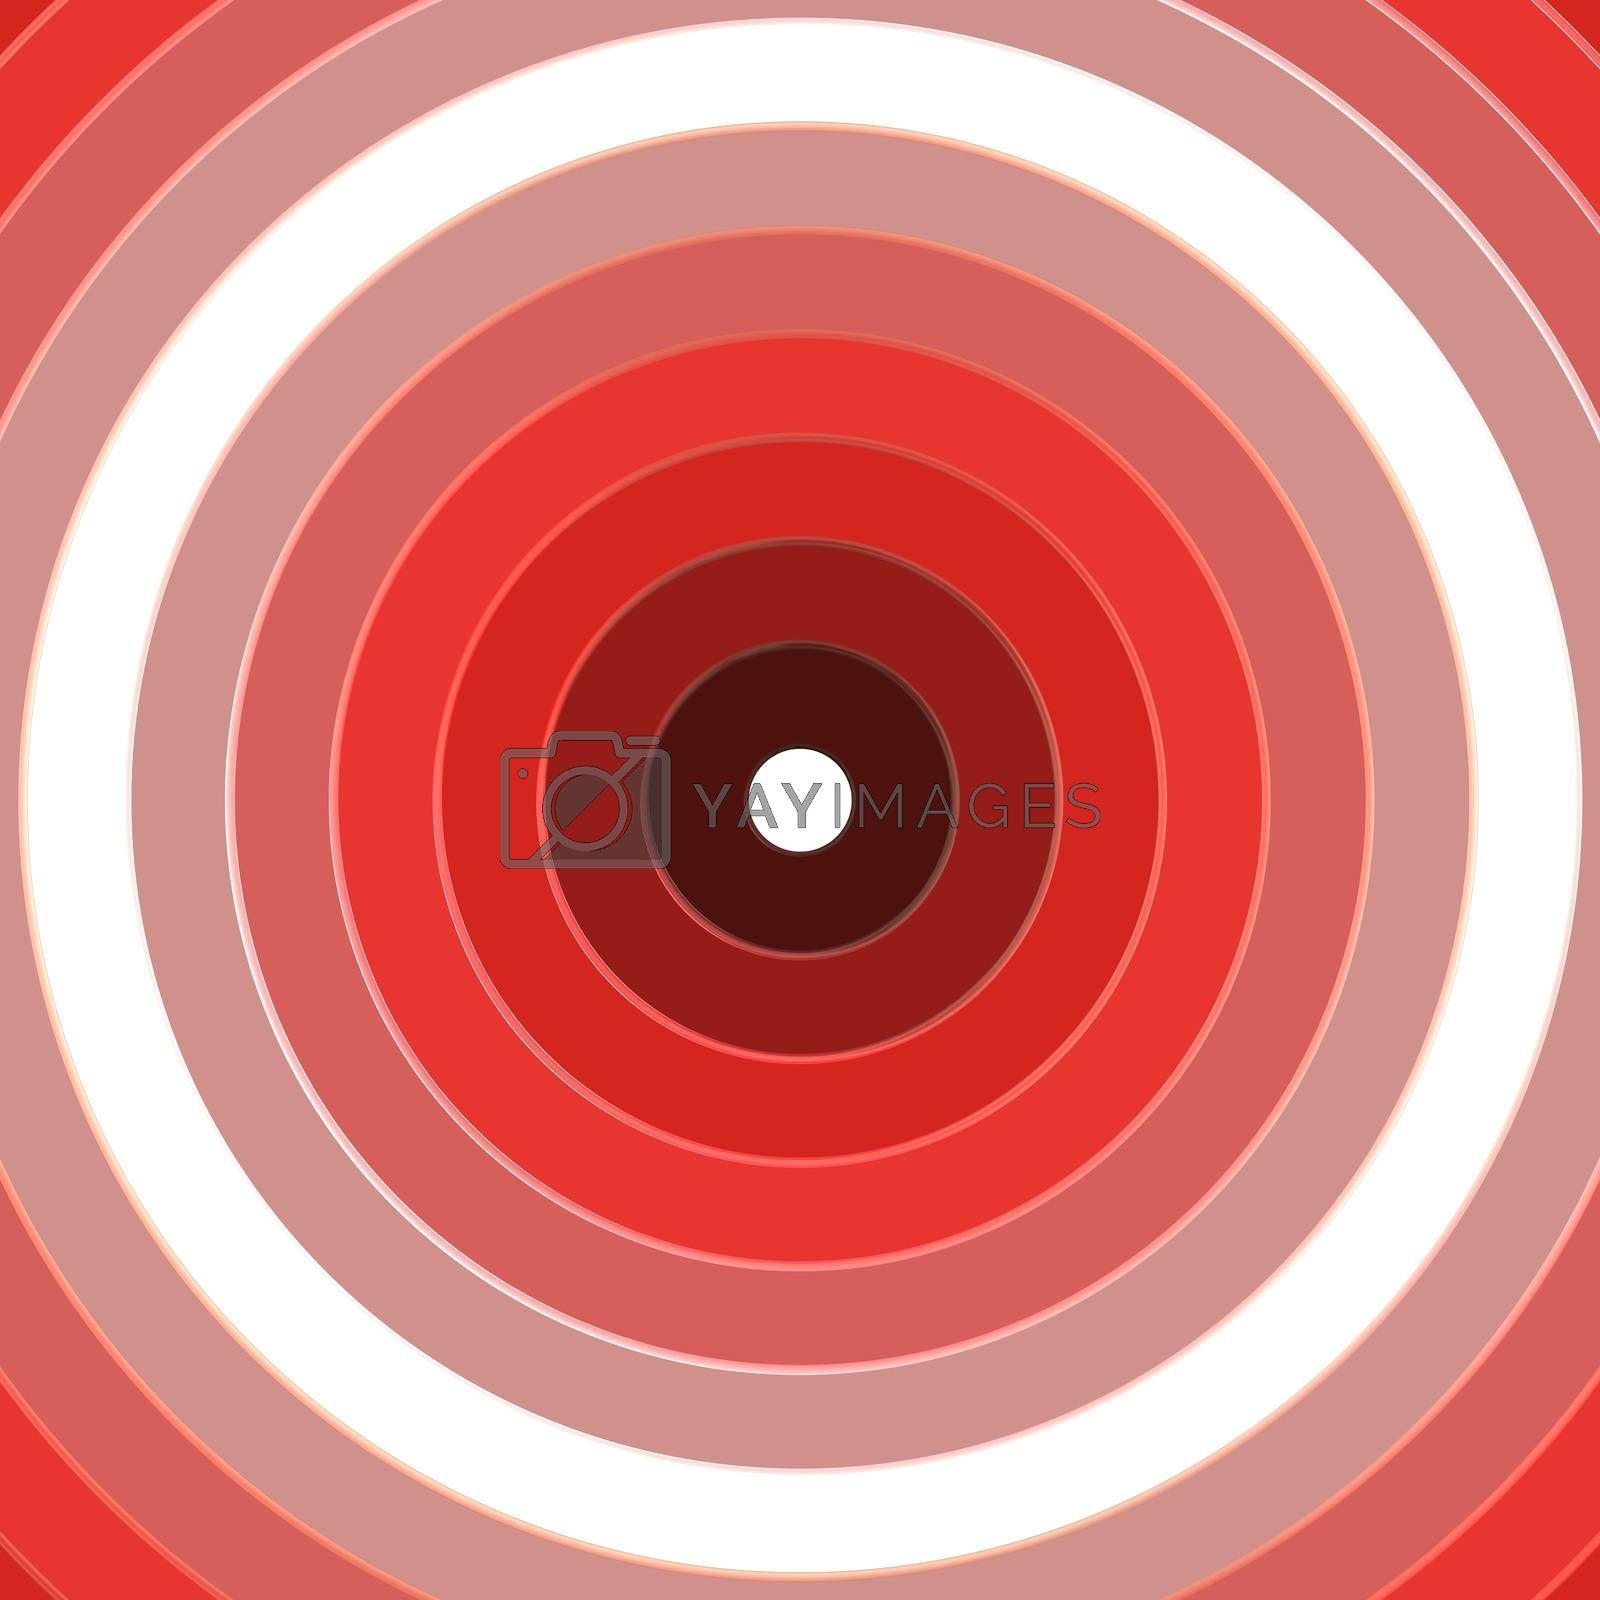 Red and white circular target rings illustration or background